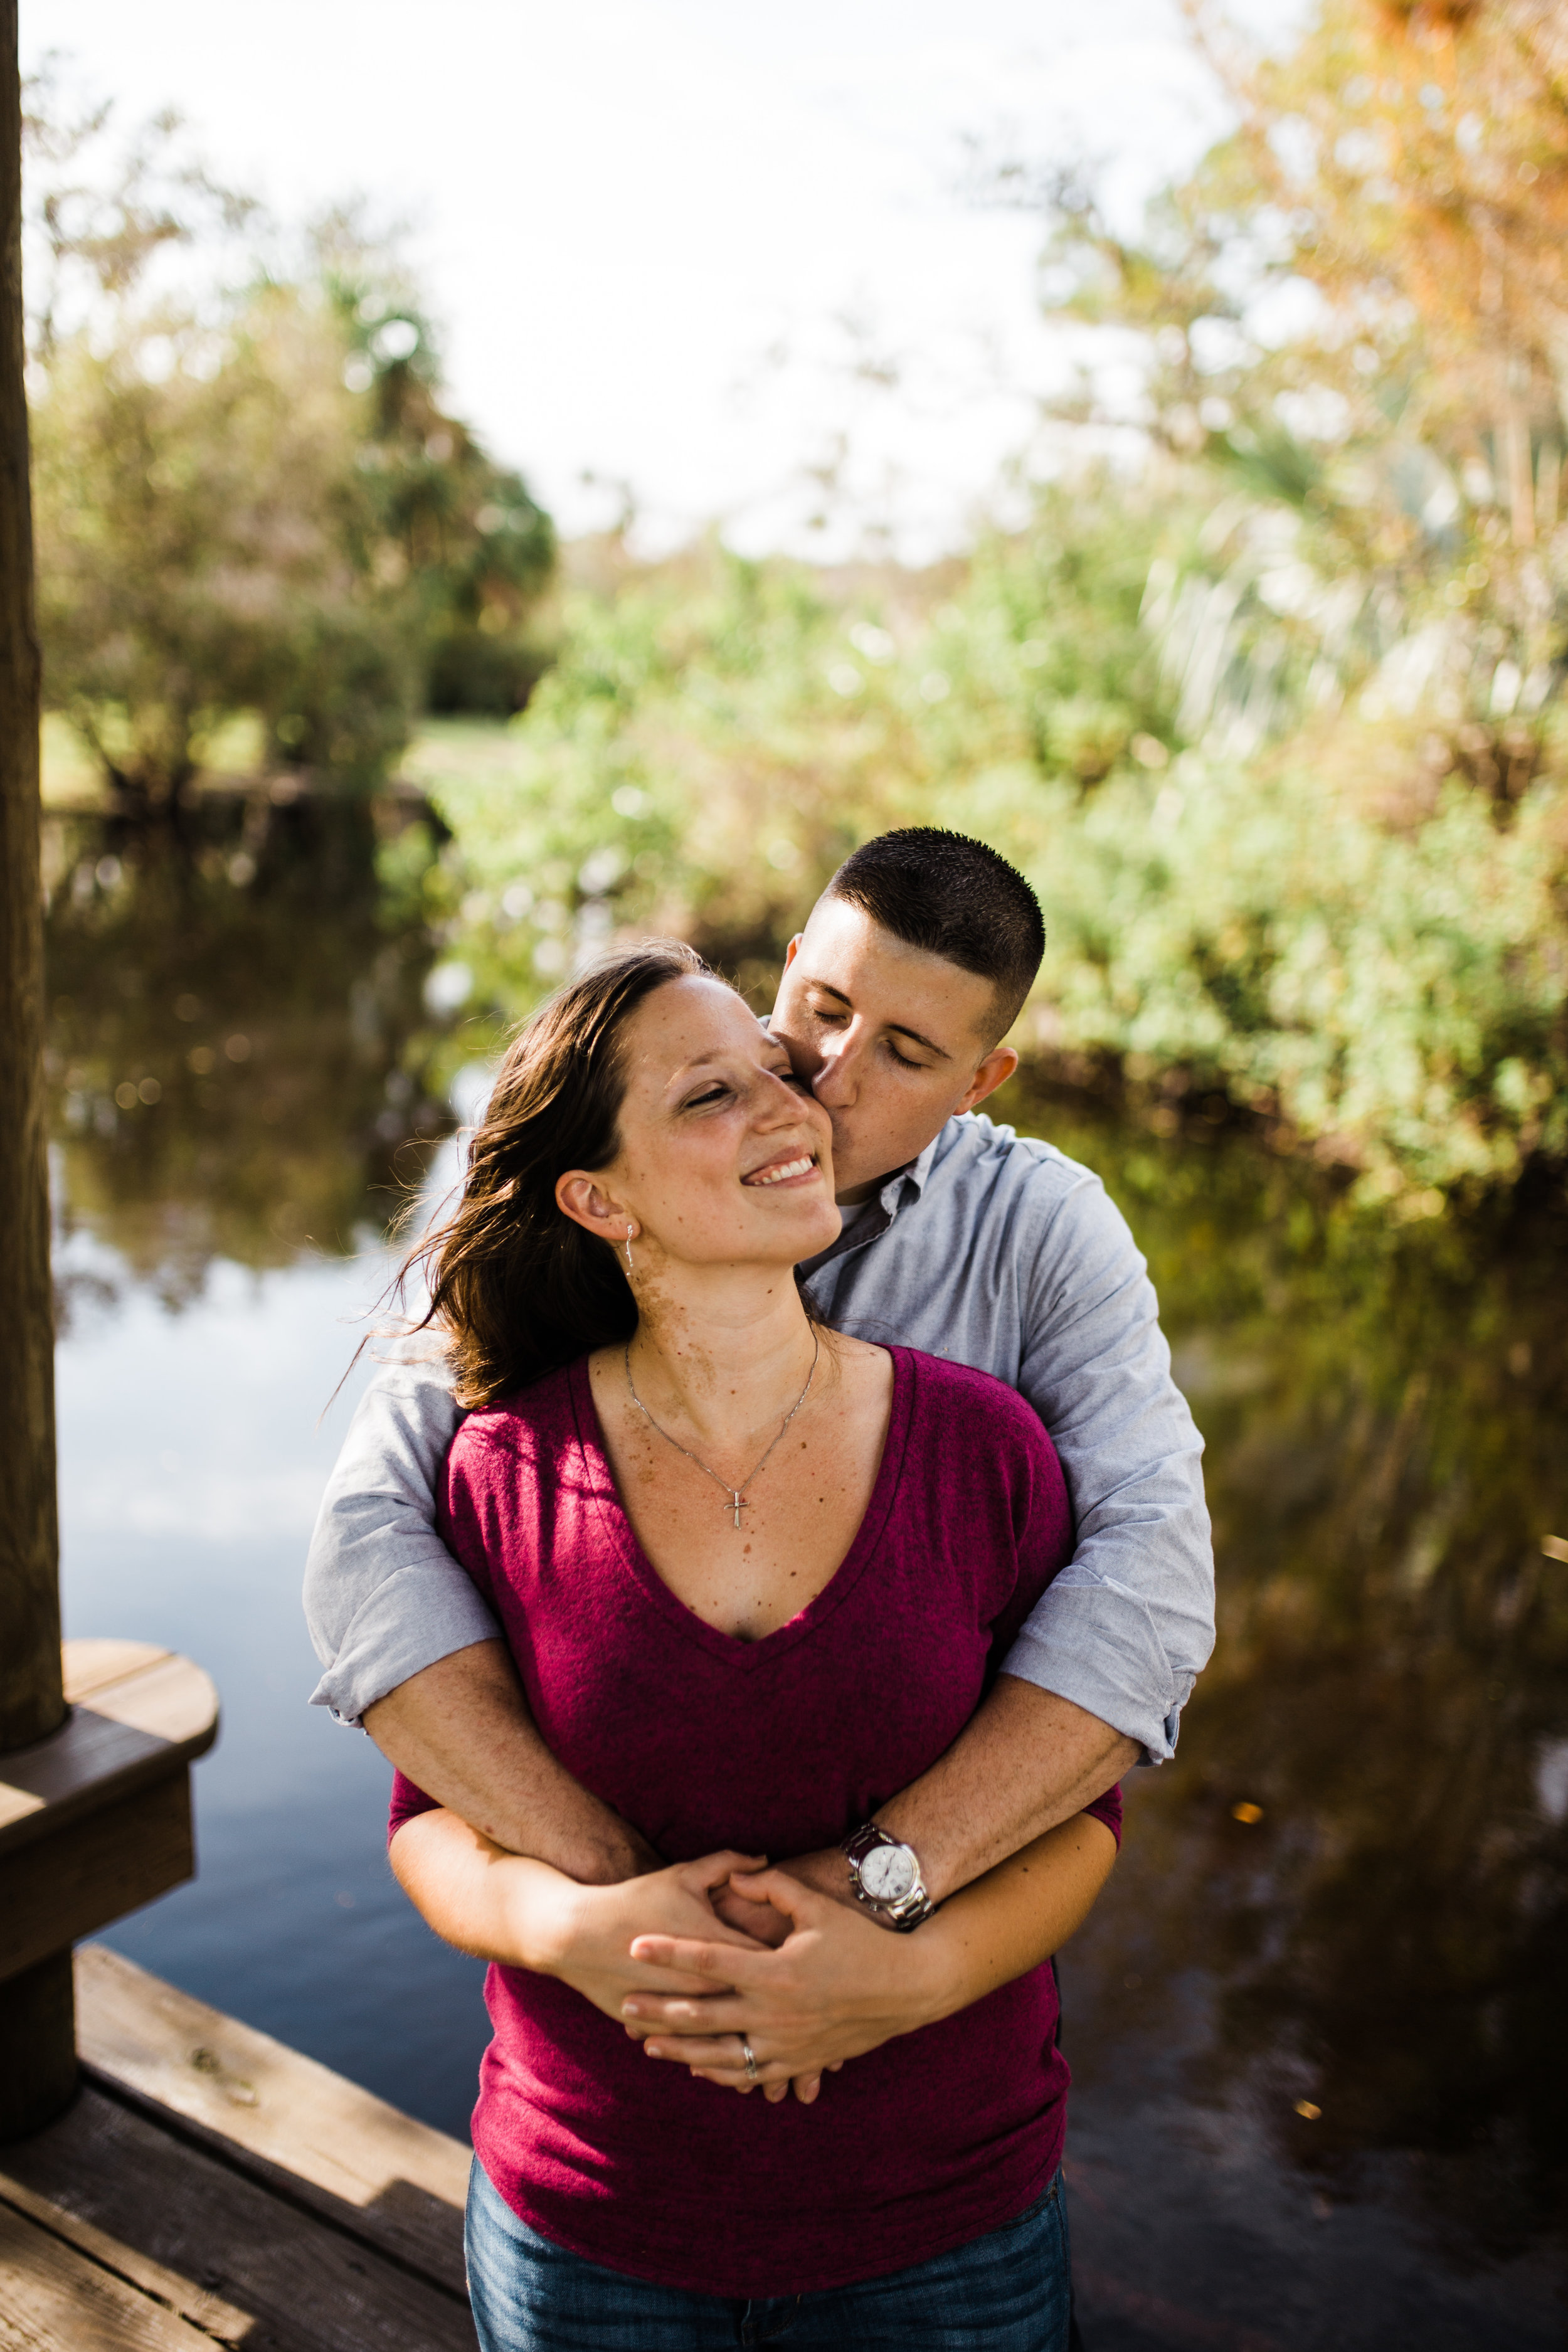 2017.09.22 Lindsay and Joey Engagement Session Up The Creek Farms (96 of 103).jpg